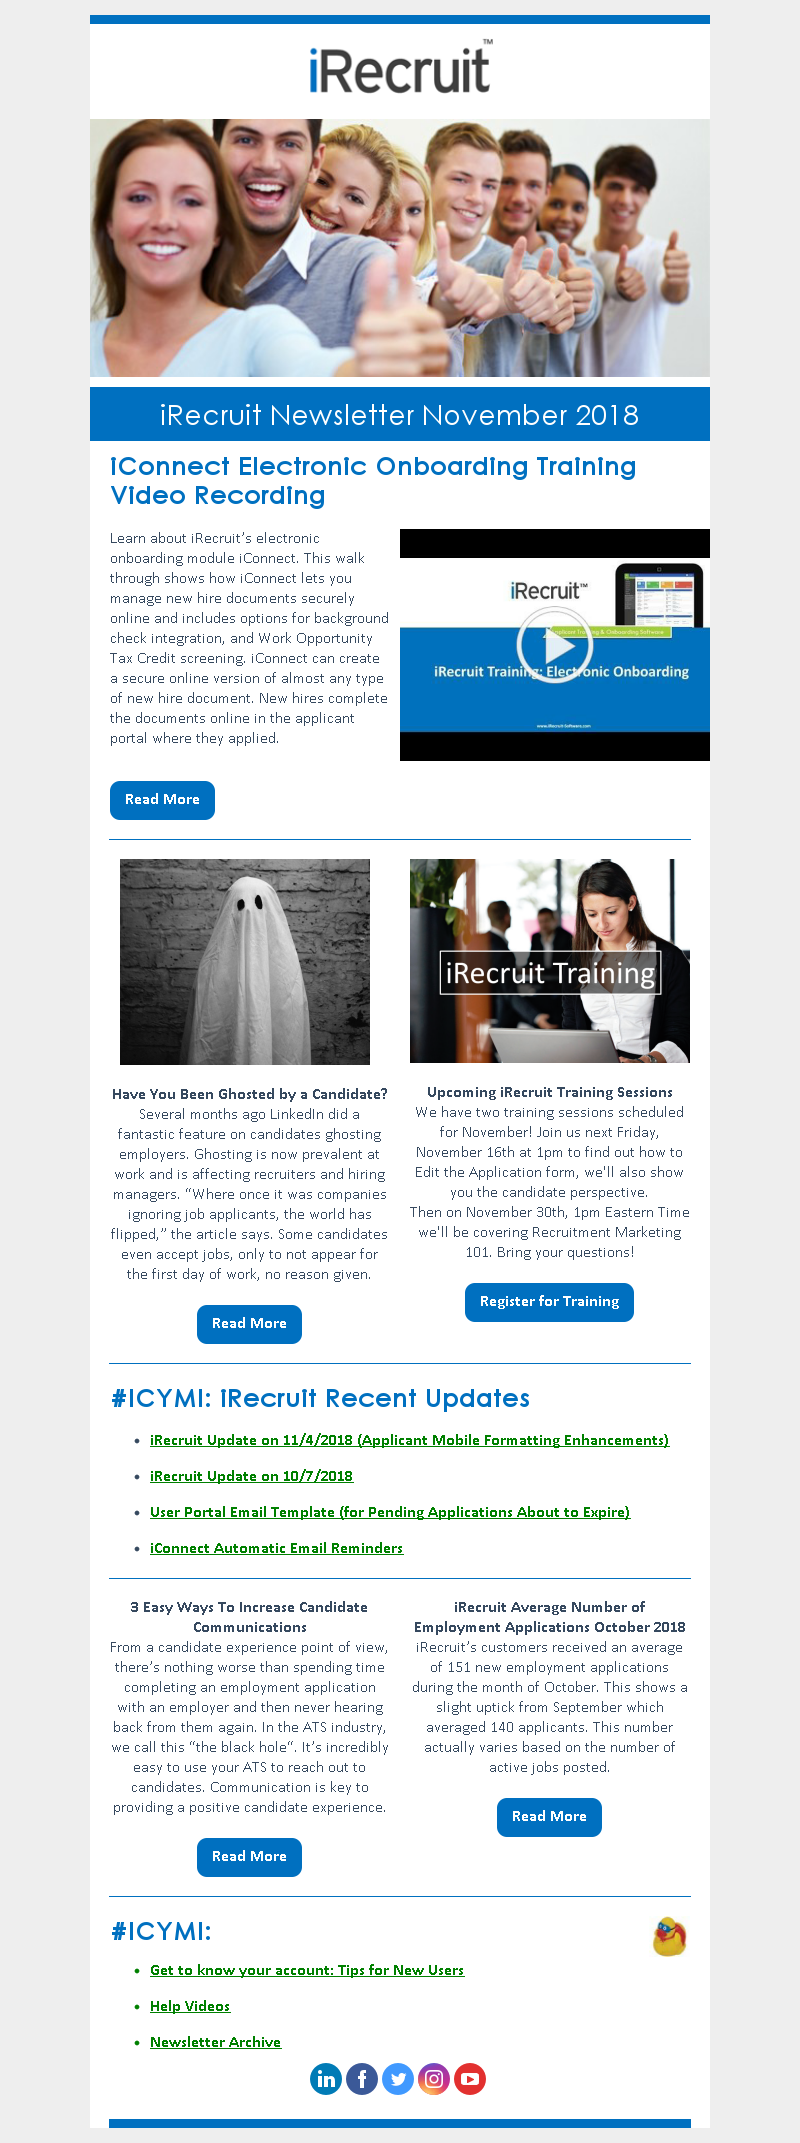 iRecruit Customer Newsletter November 2018